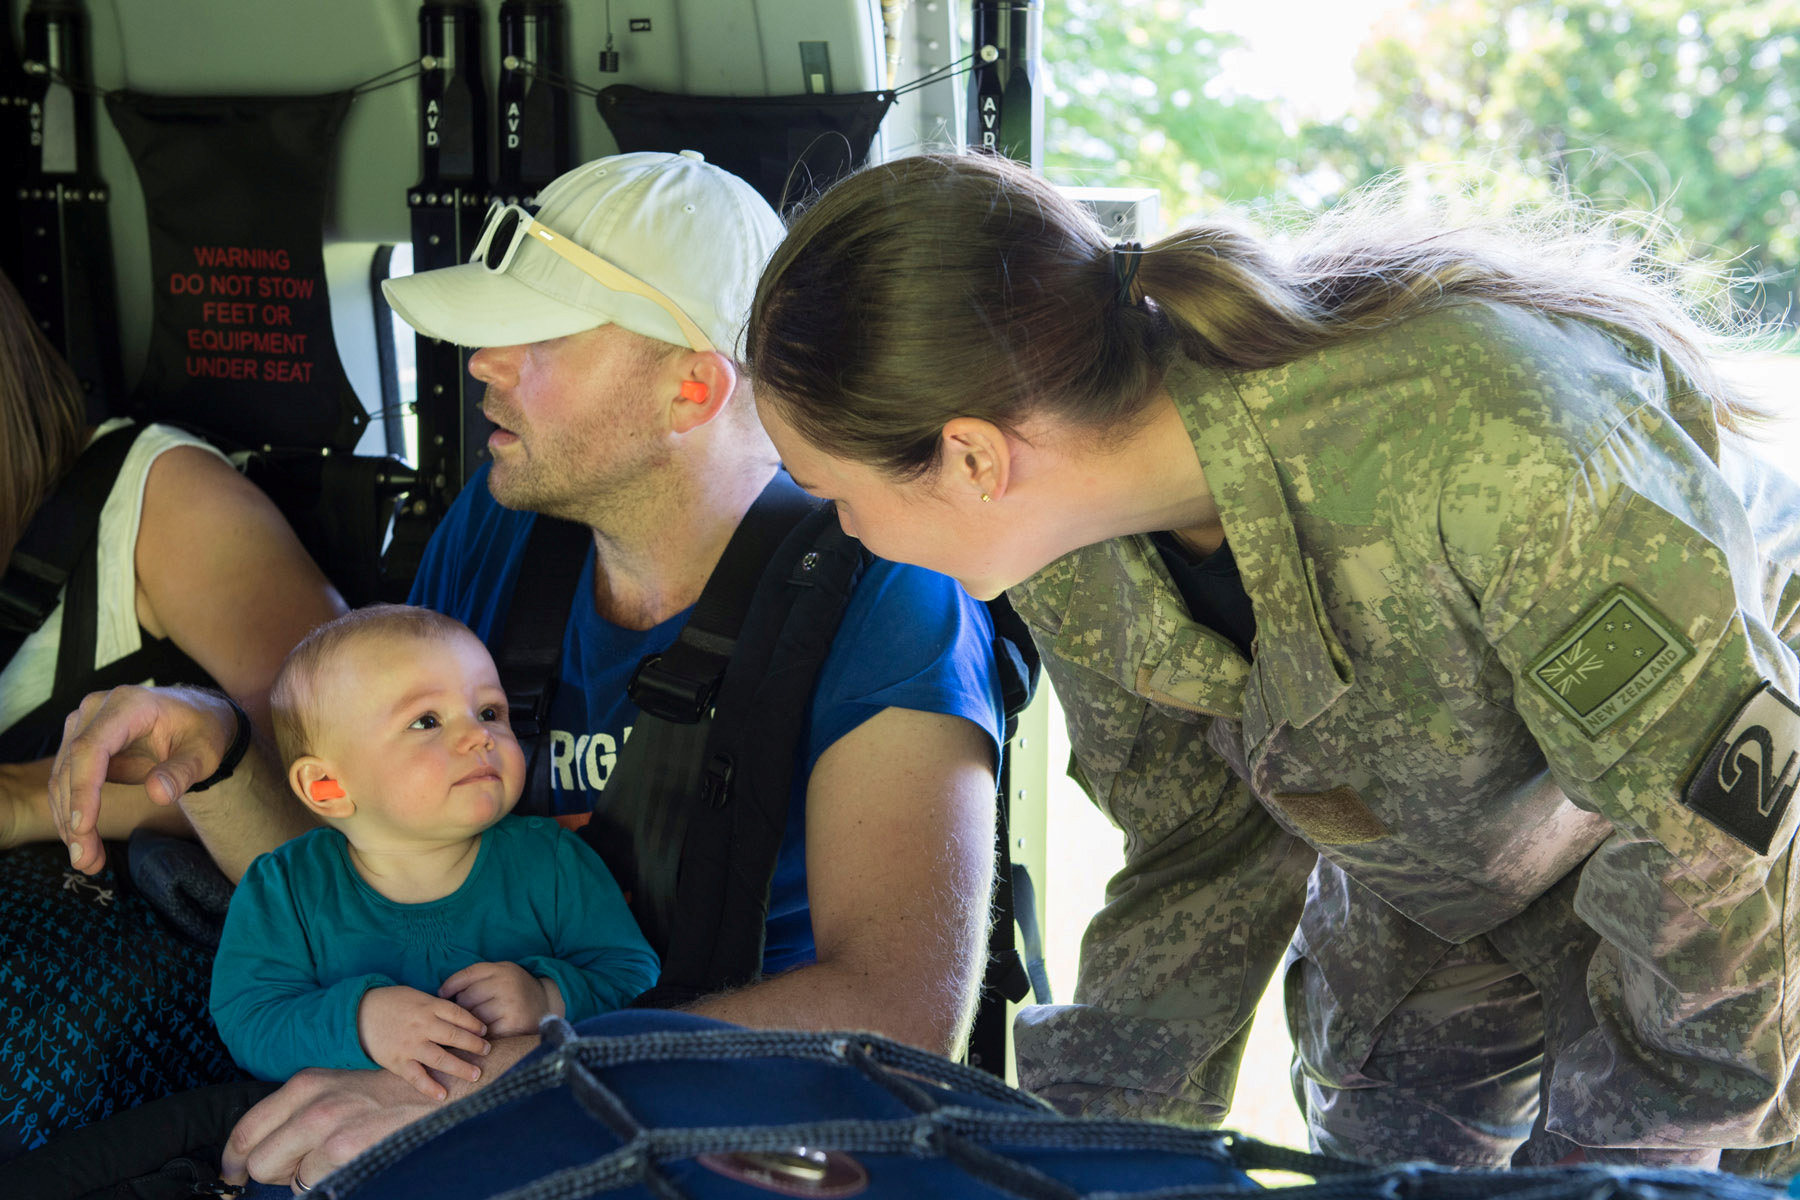 A Royal New Zealand Air Force member (R) helps evacuate a toddler and others aboard an NH90 helicopter from Kaikoura on the South Island of New Zealand